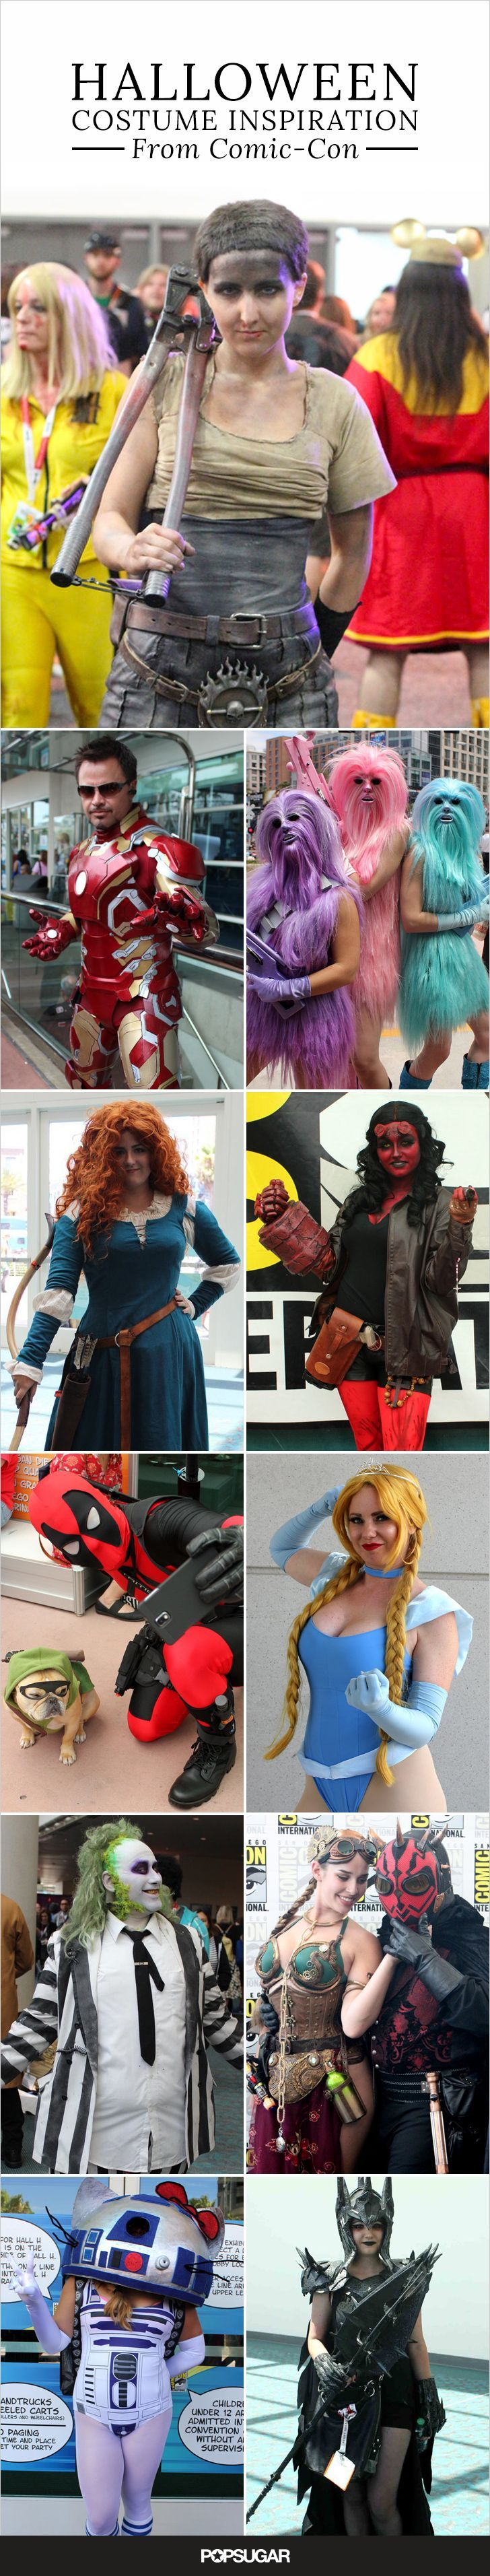 215 best Halloween Fashion & Cosplay images on Pinterest